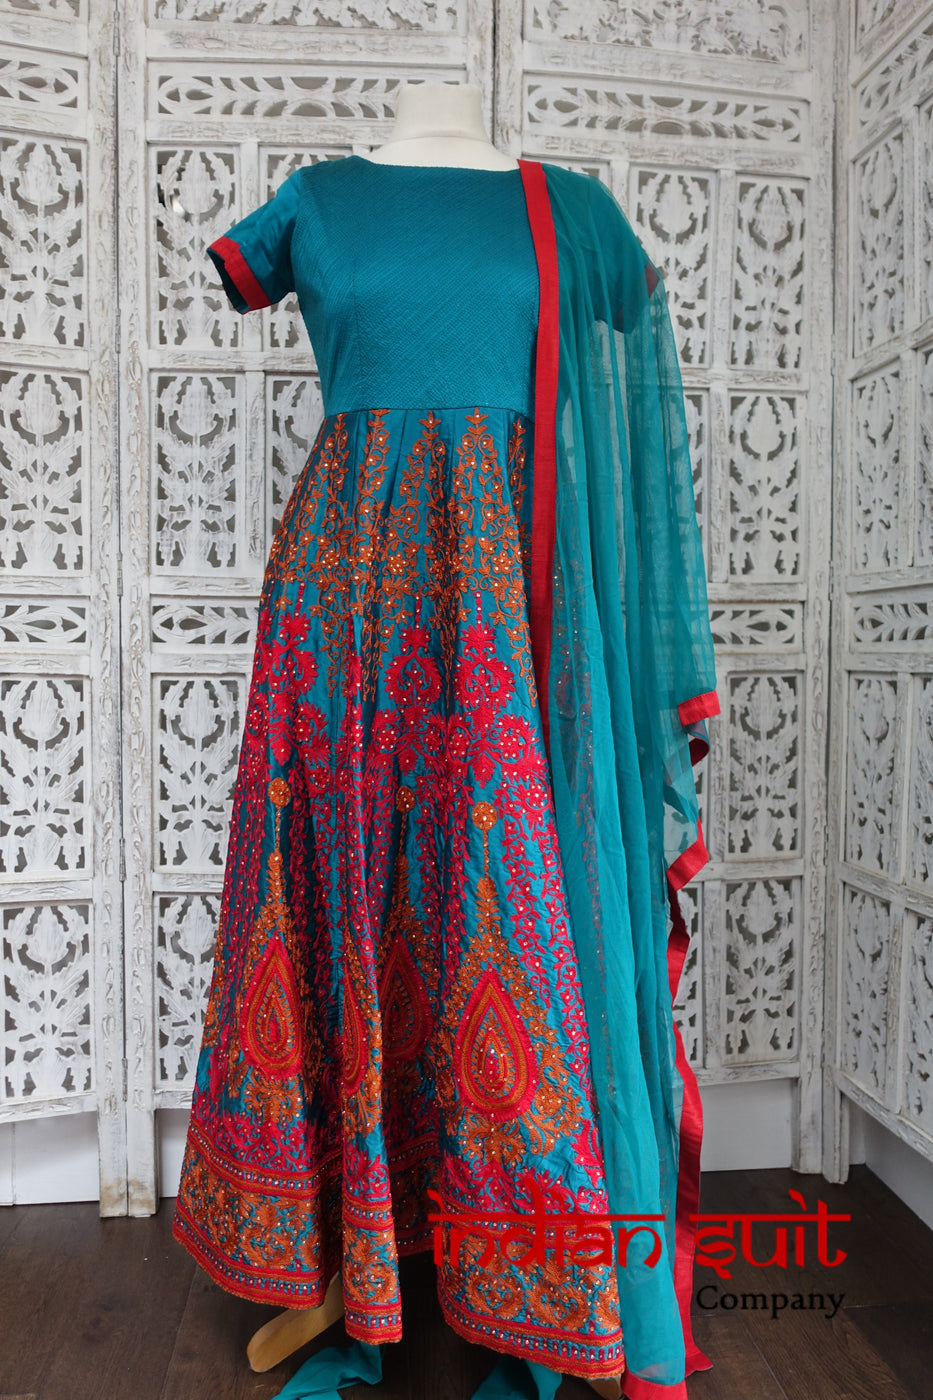 Teal Designer Frock Churidaar Suit - Preloved - UK 10 / EU 36 - Indian Suit Company